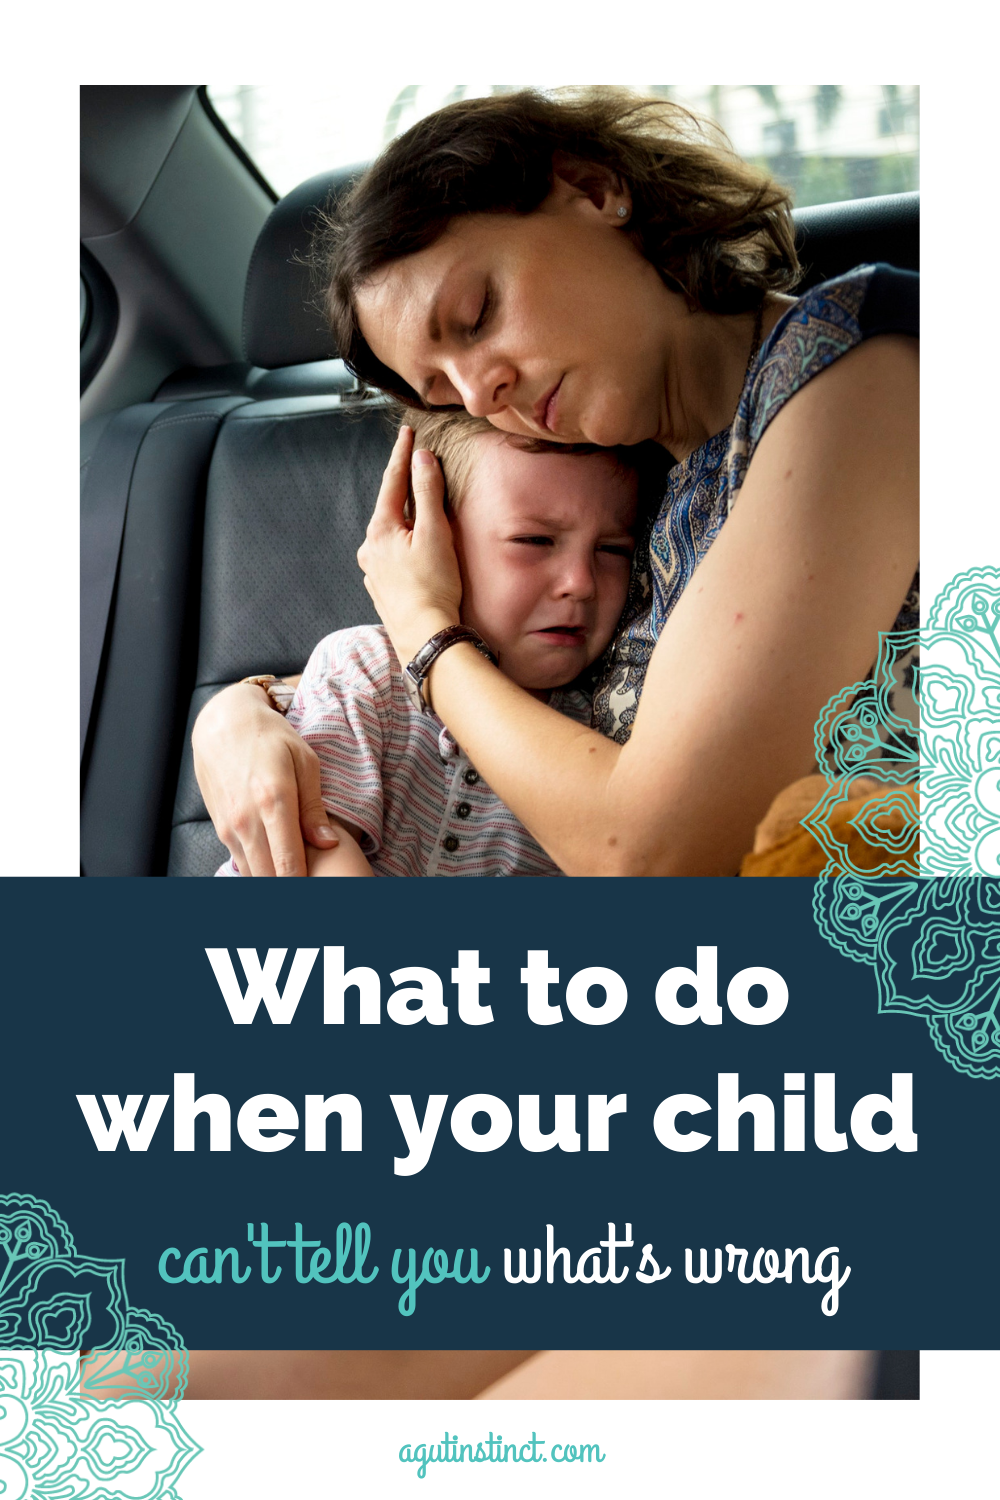 a mother consoling her child who is having a meltdown in his car seat while she waits it out